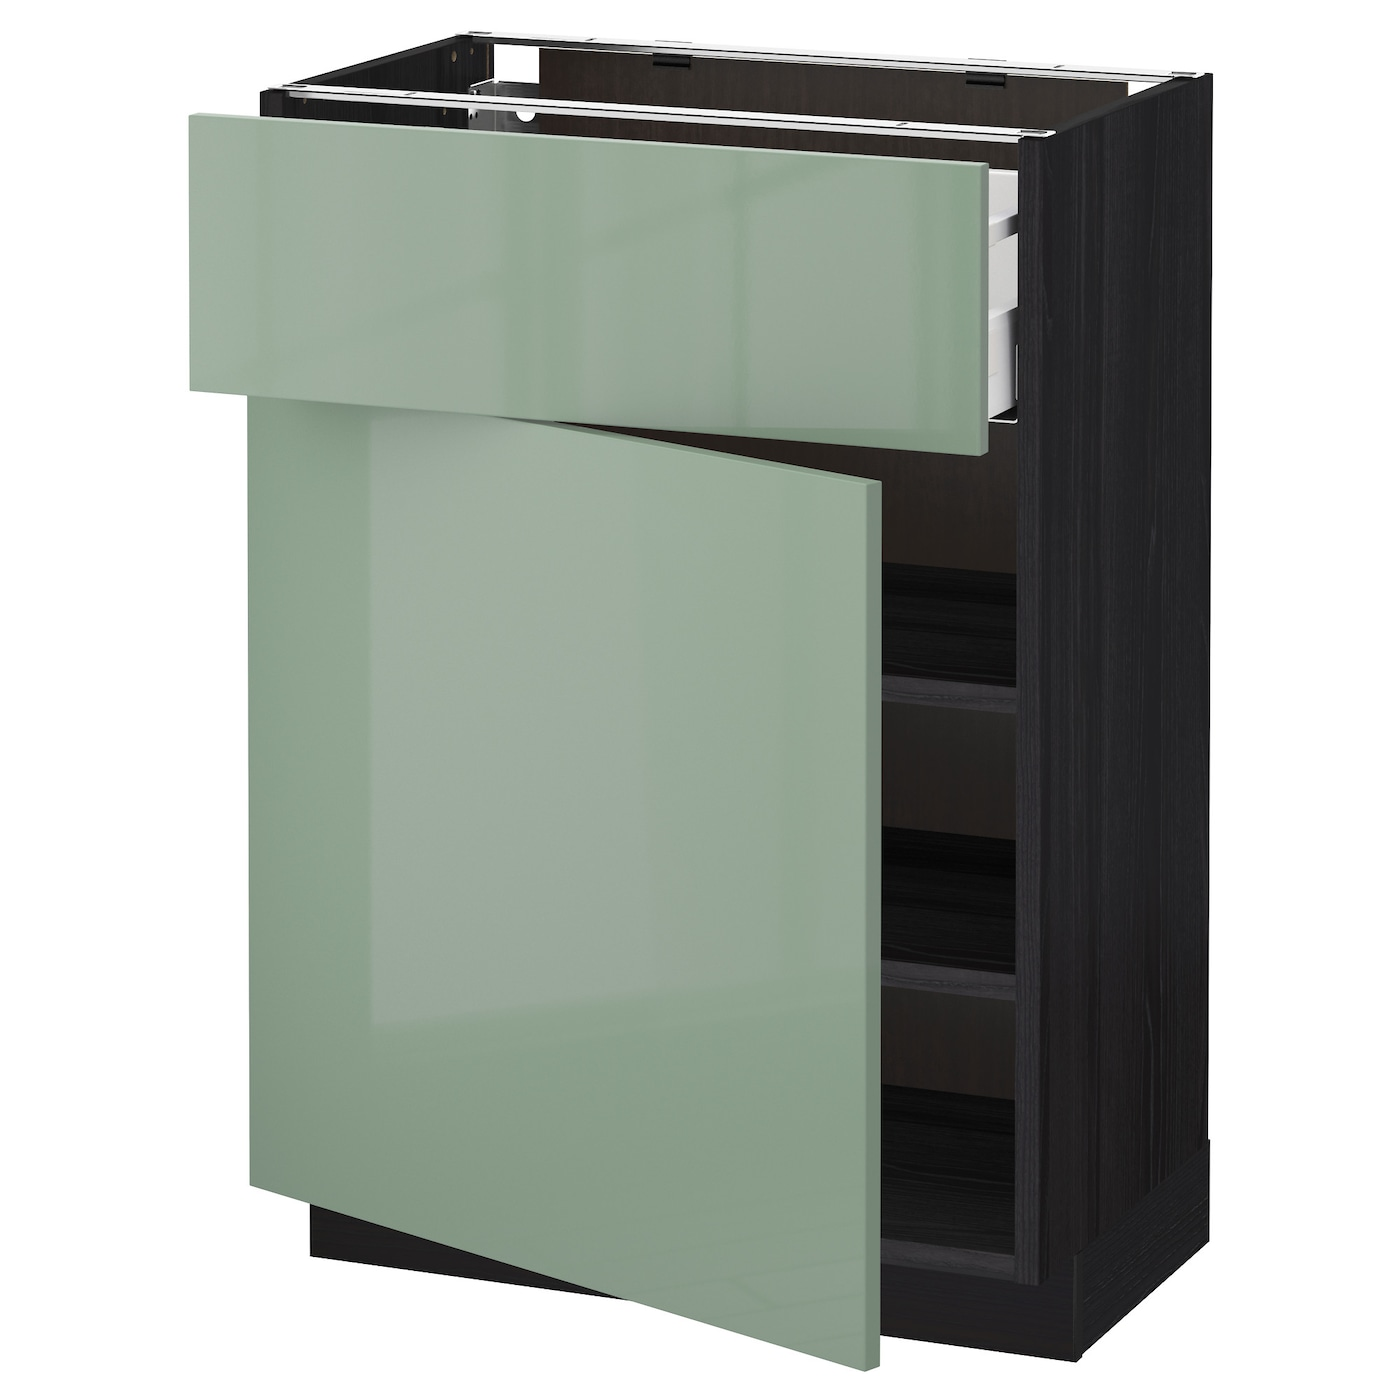 metod maximera base cabinet with drawer door black kallarp light green 60x37 cm ikea. Black Bedroom Furniture Sets. Home Design Ideas